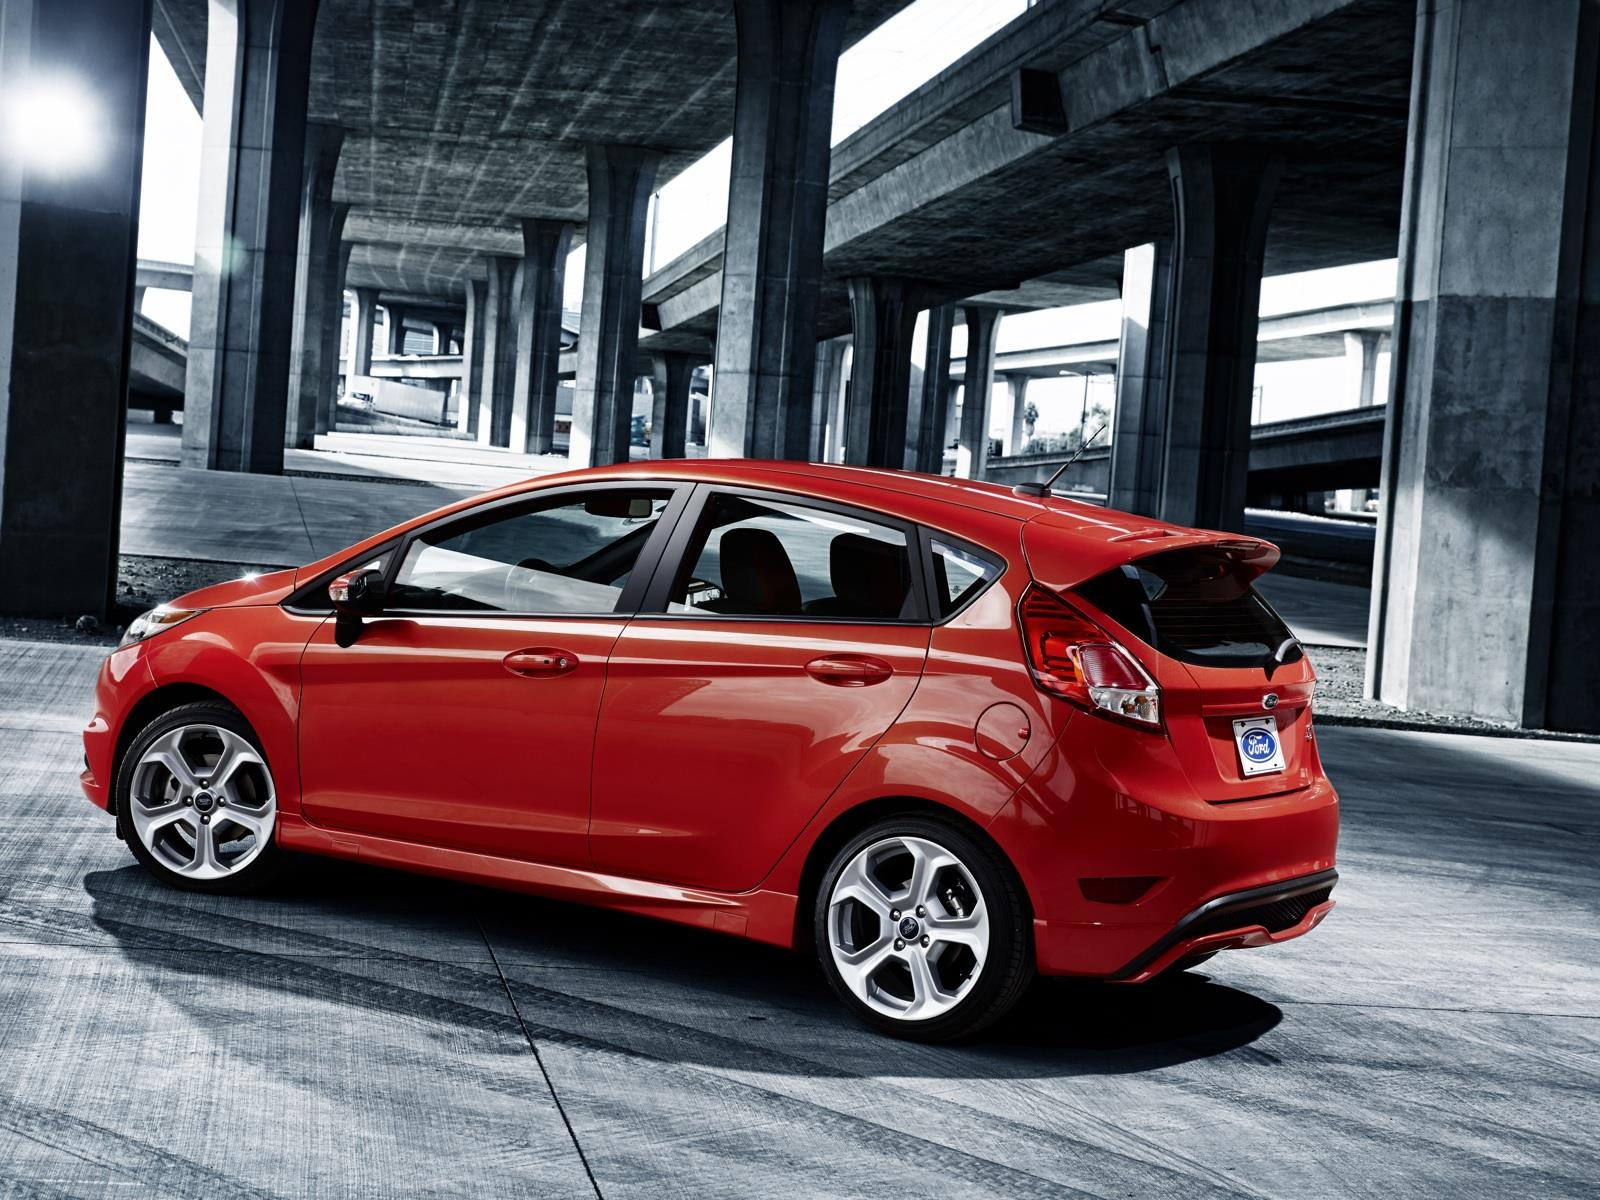 2015 Ford Fiesta red hatchback st